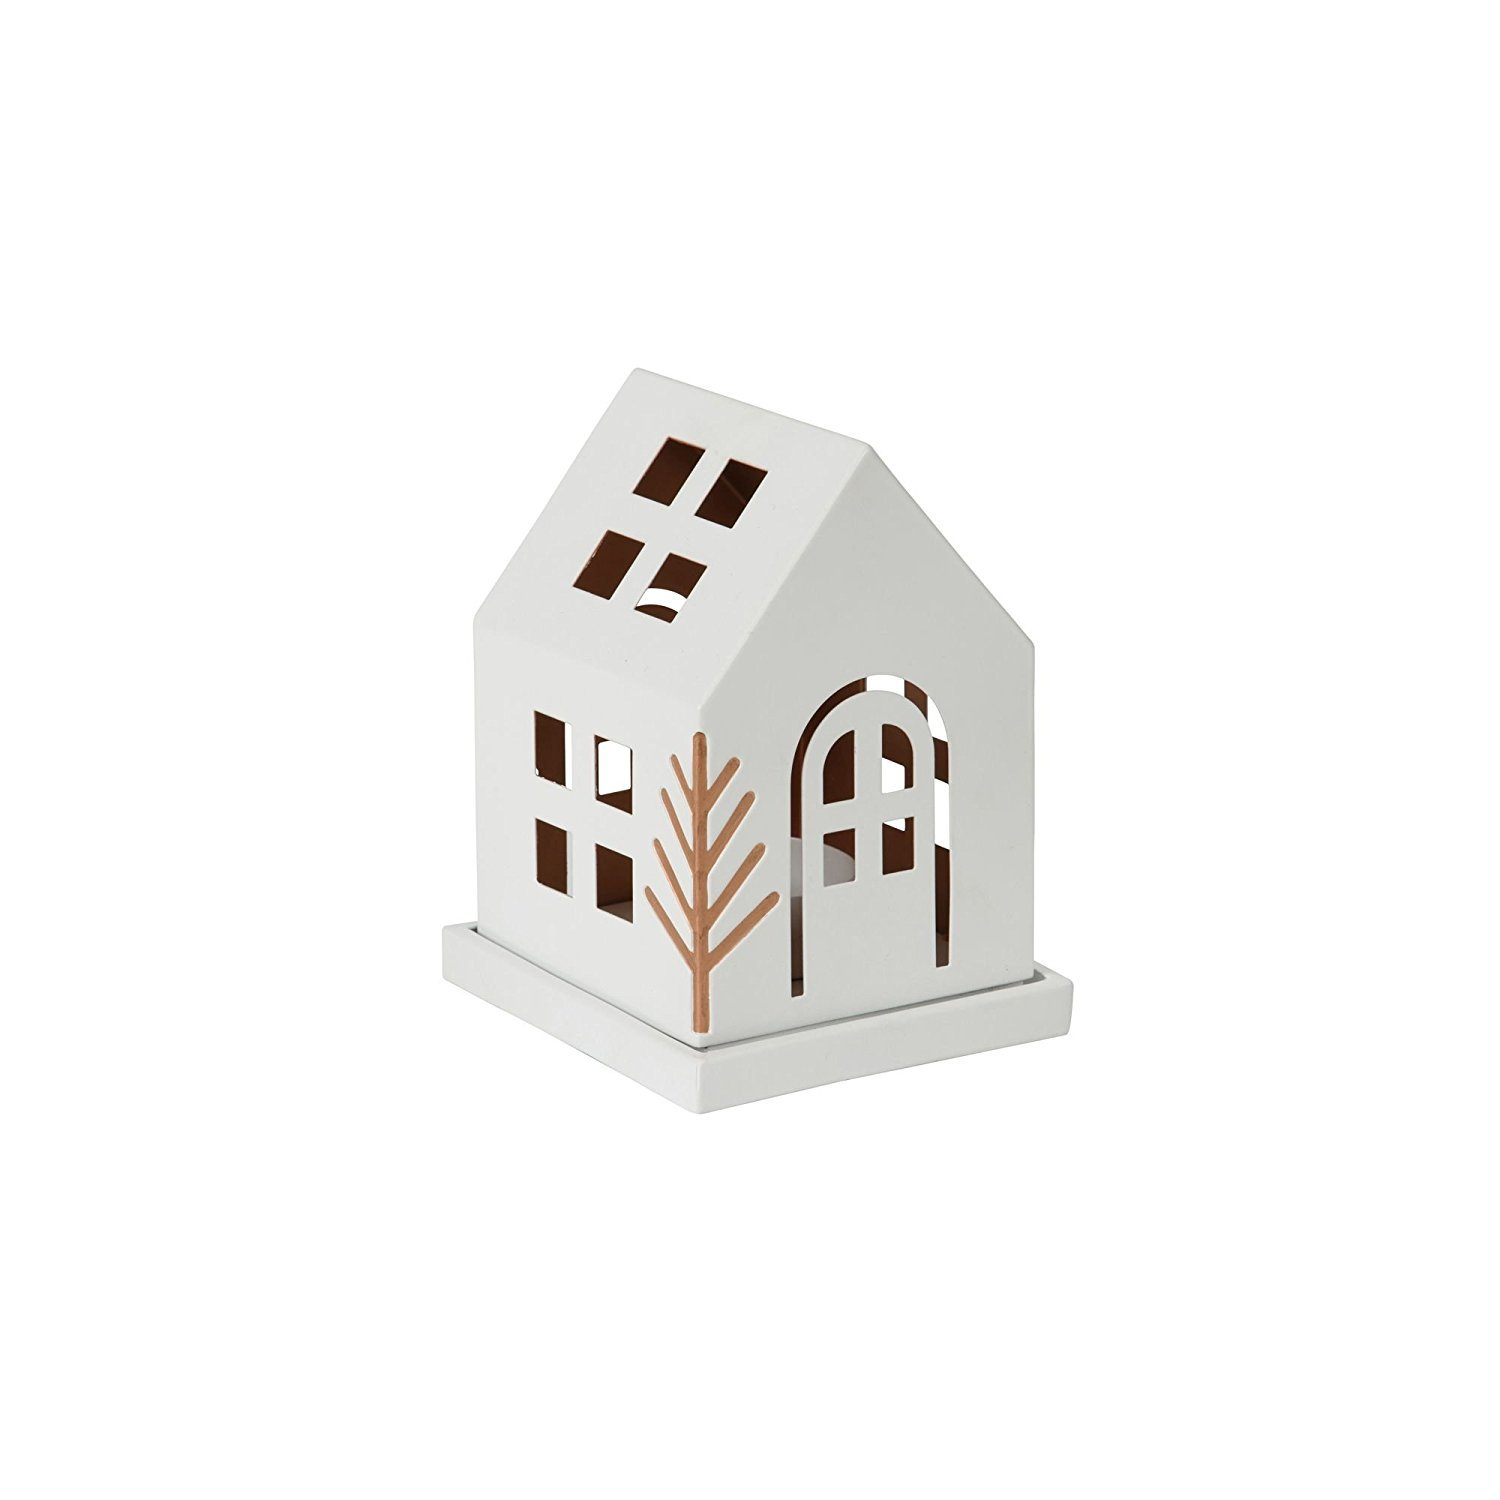 Yankee Candle Small 'Village' Luminary Christmas Candle Holder